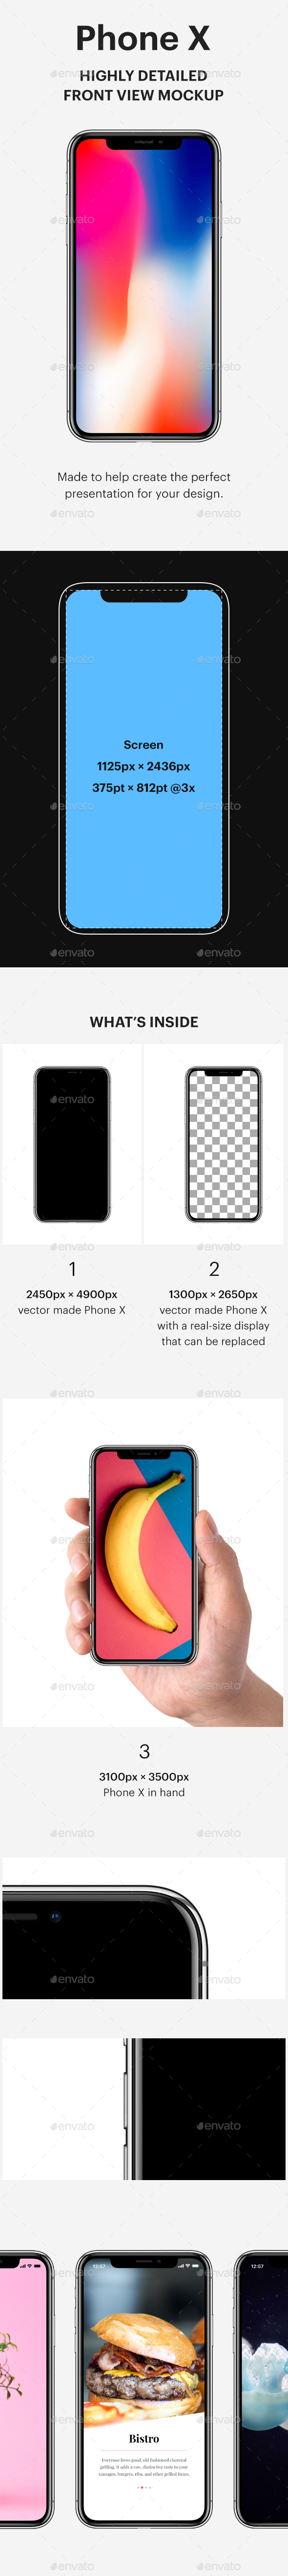 GraphicRiver Phone X Front View Mockup 20670449